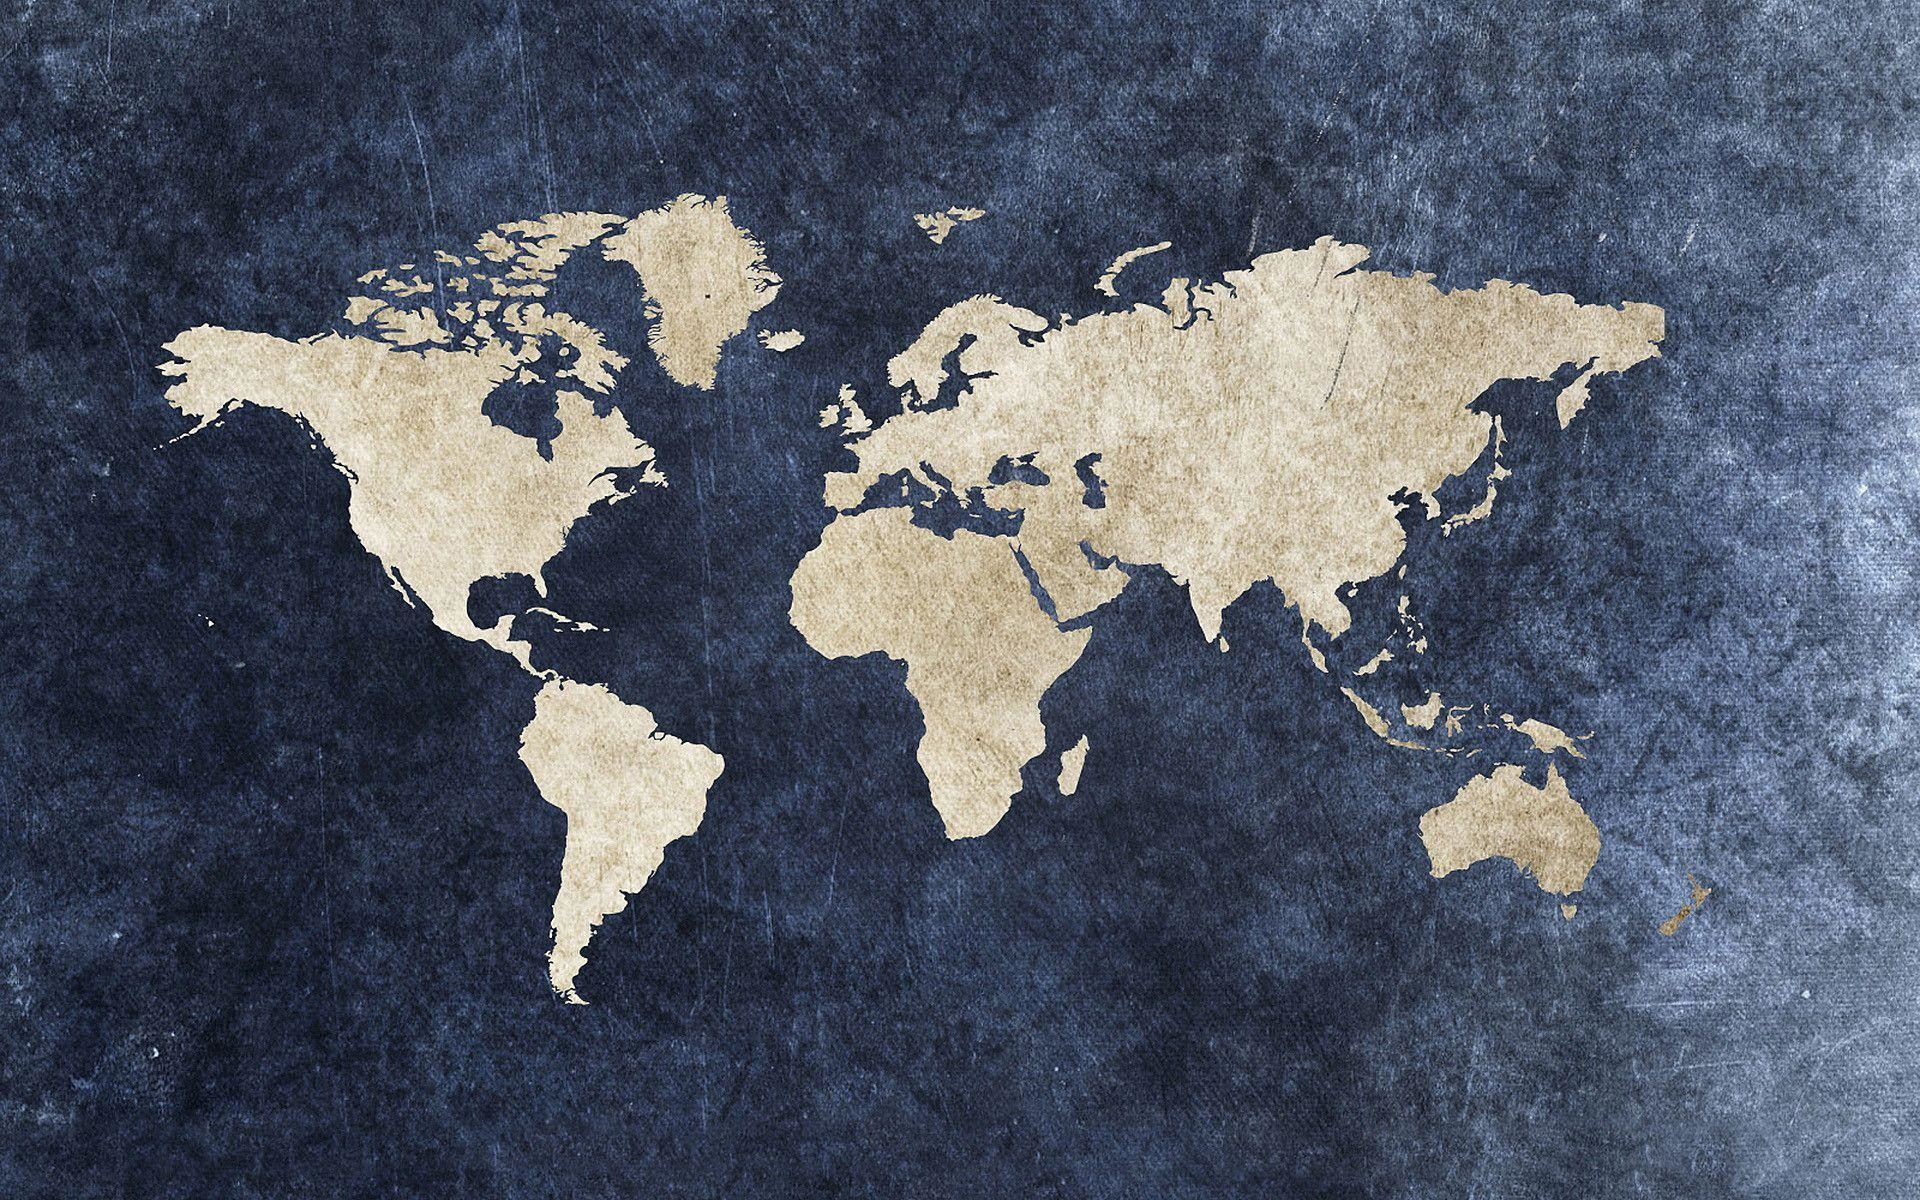 World Map Wallpaper Adelaide. 1920x1200 World Map Wallpapers  Full HD wallpaper search Desktop Wallpaper 70 images